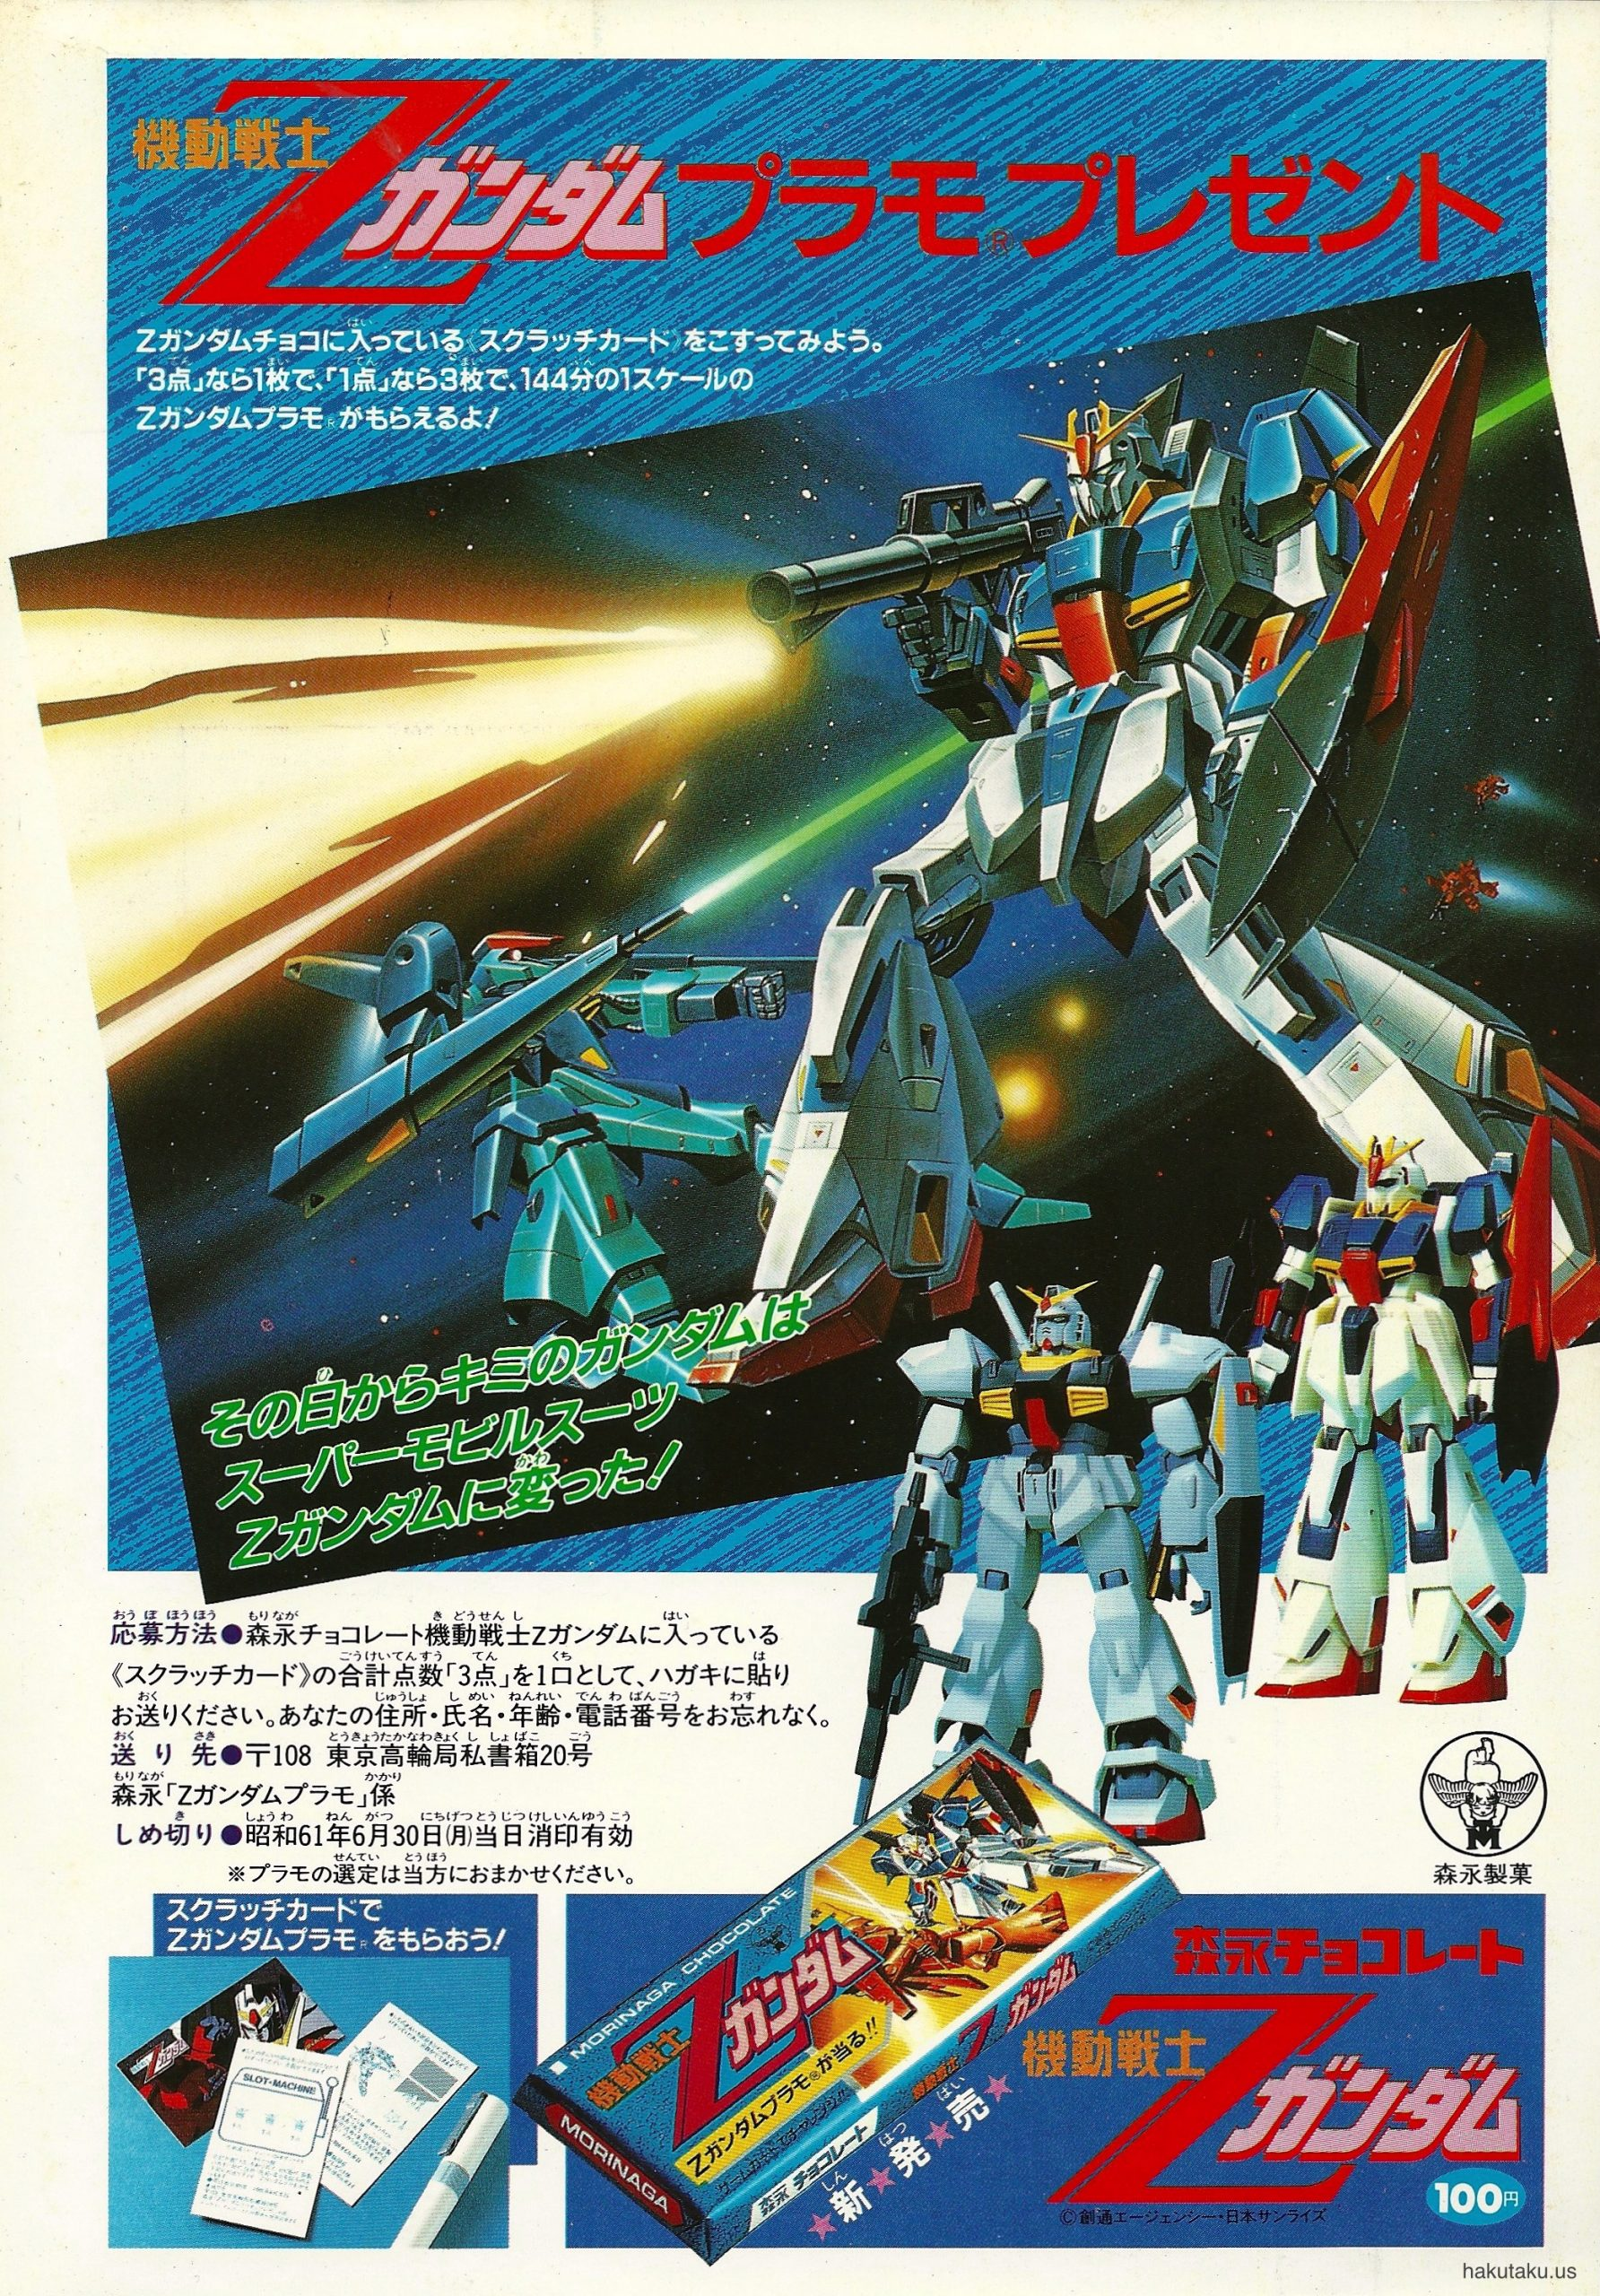 Terebi Land Zeta Gundam Ad featuring Morinaga Chocolates